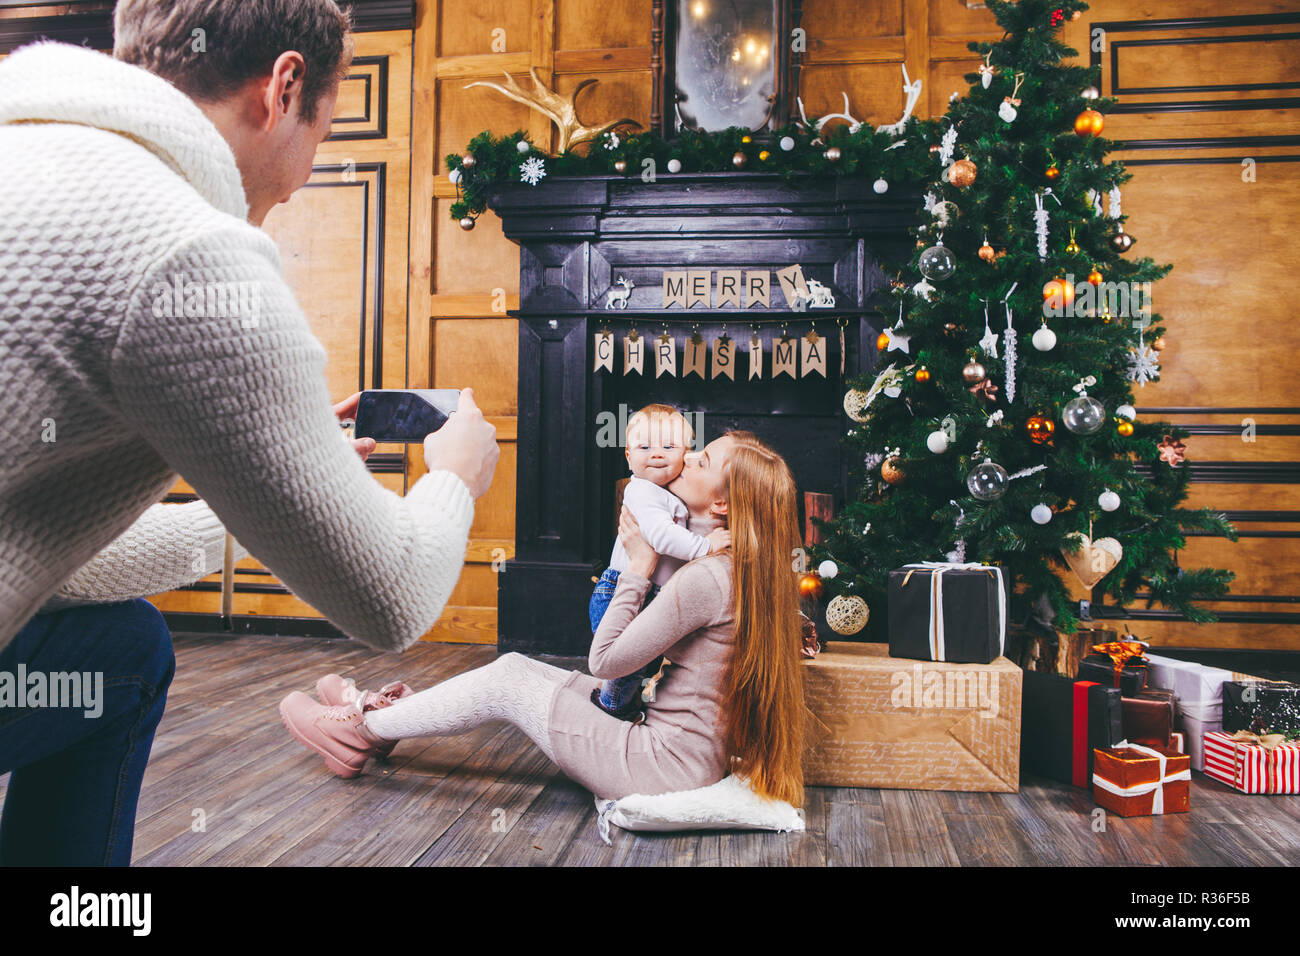 Theme mobile photography, amateur photo video phone. Hands Caucasian man holds uses smartphone makes photo mother and son home near fireplace and Chri - Stock Image